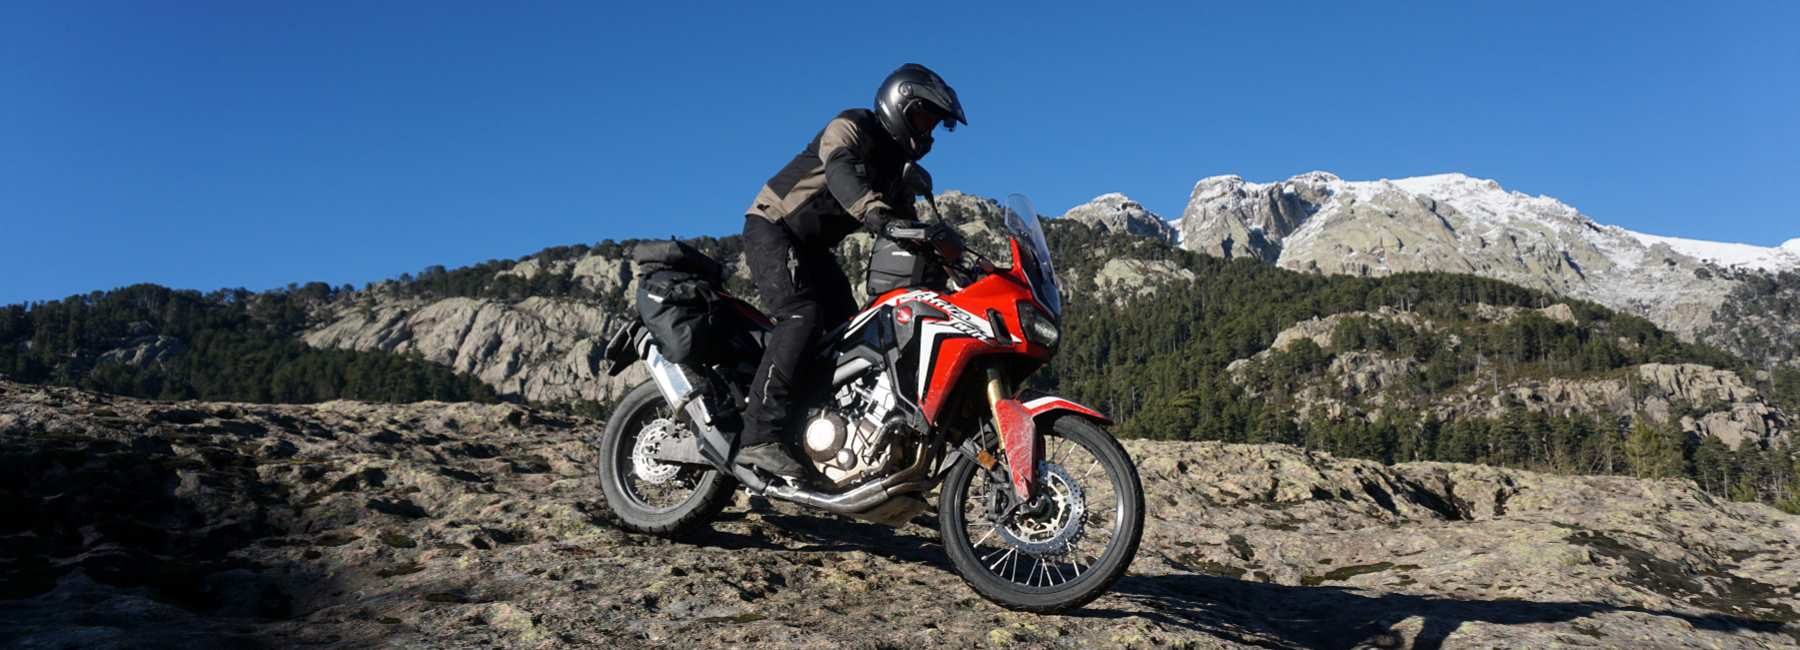 We can setup your bike for great adventures!